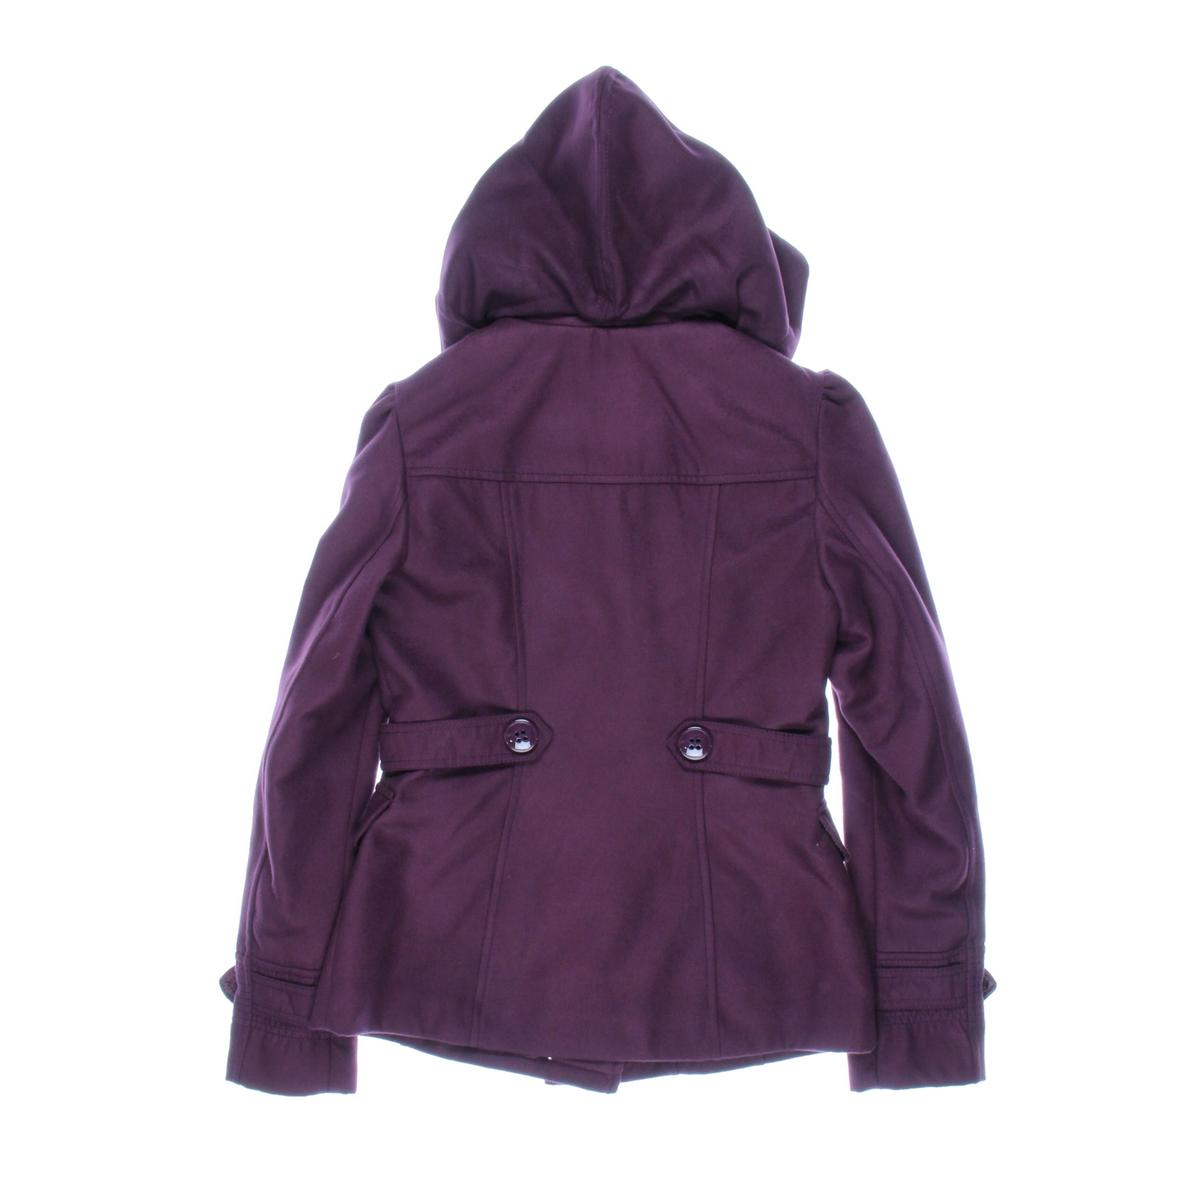 Free shipping and returns on Women's Pink Coats, Jackets & Blazers at appzdnatw.cf